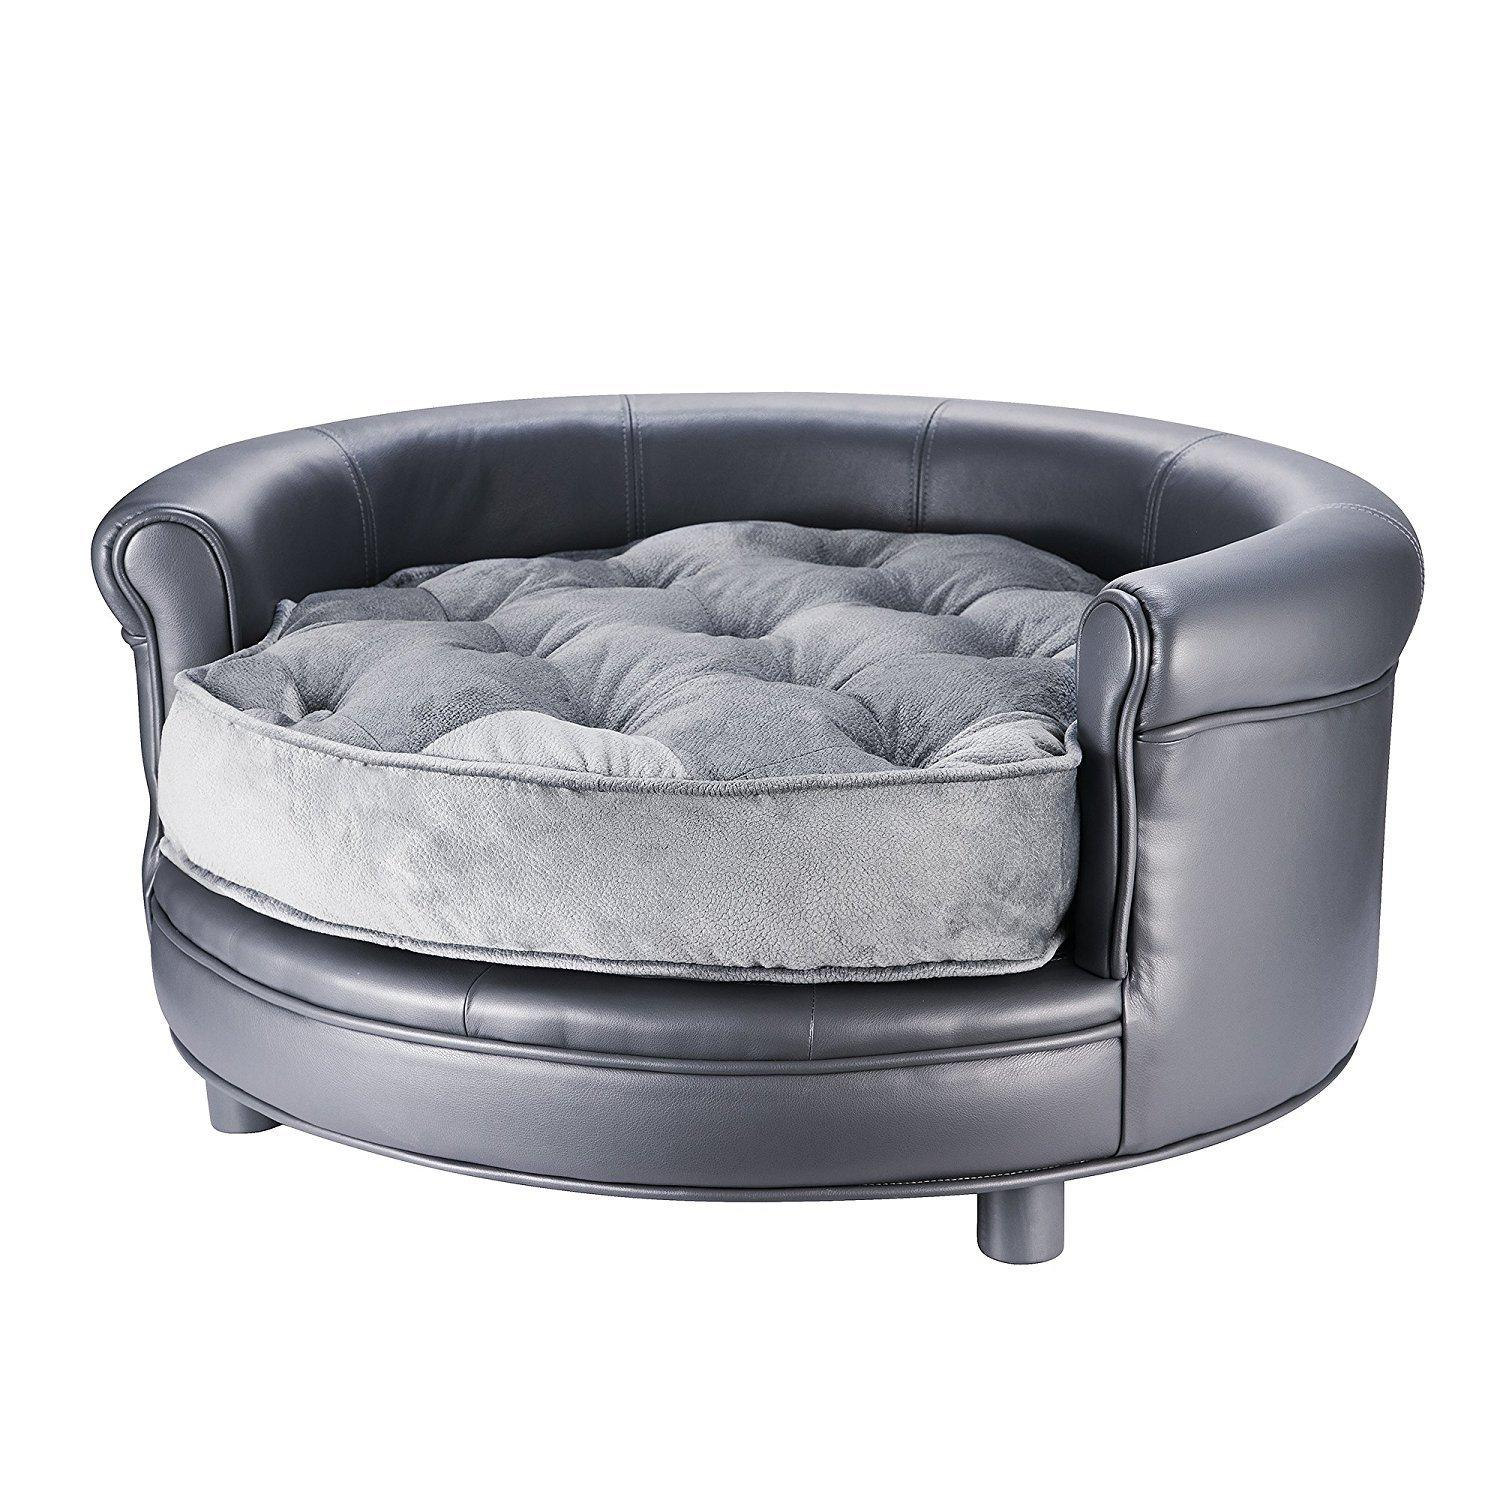 Amazon Villacera Chesterfield Faux Leather Dog Bed